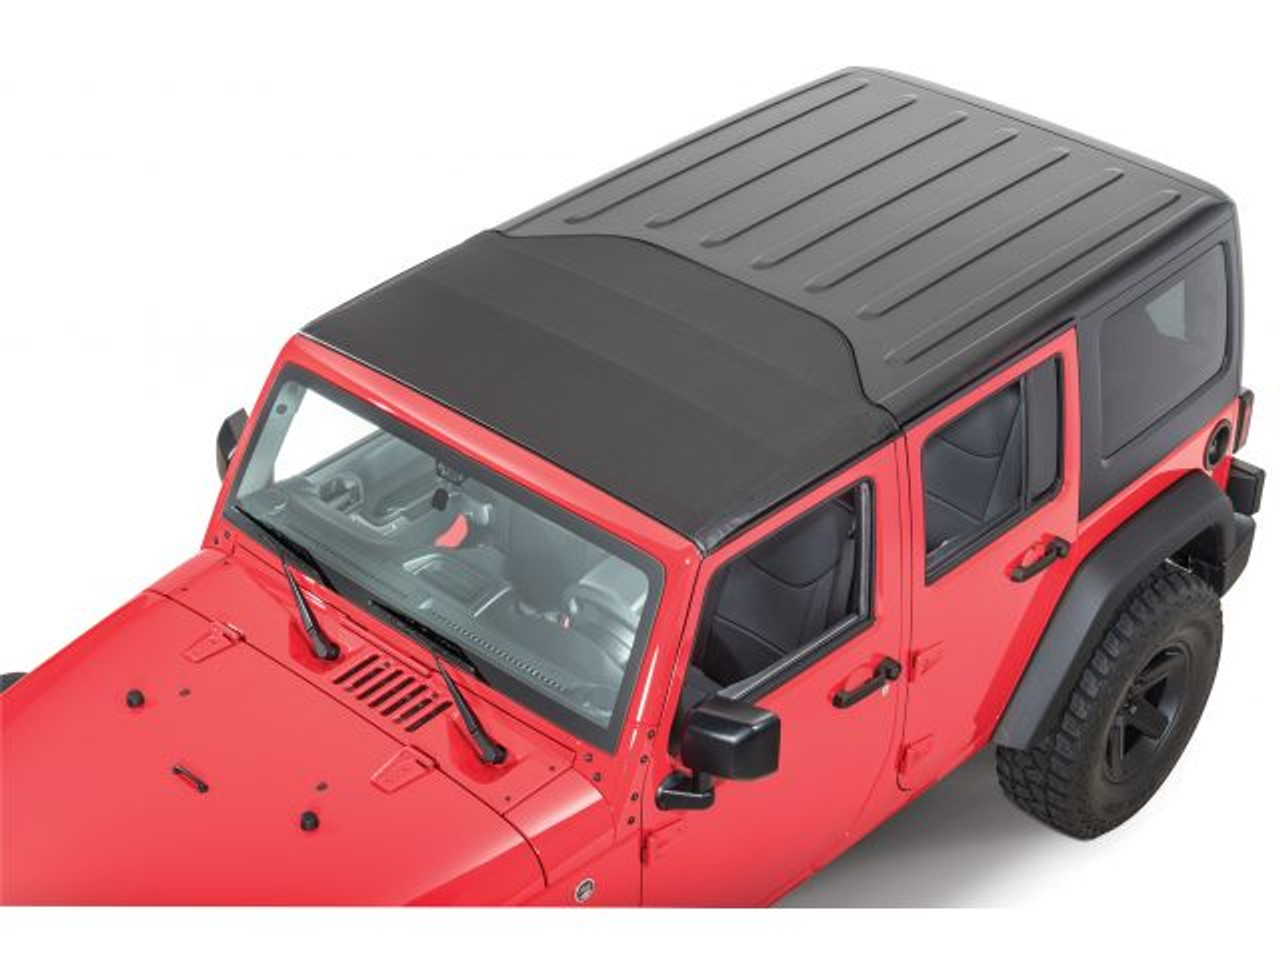 Bestop Sunrider for Factory Hardtop for Jeep JK in Closed Position